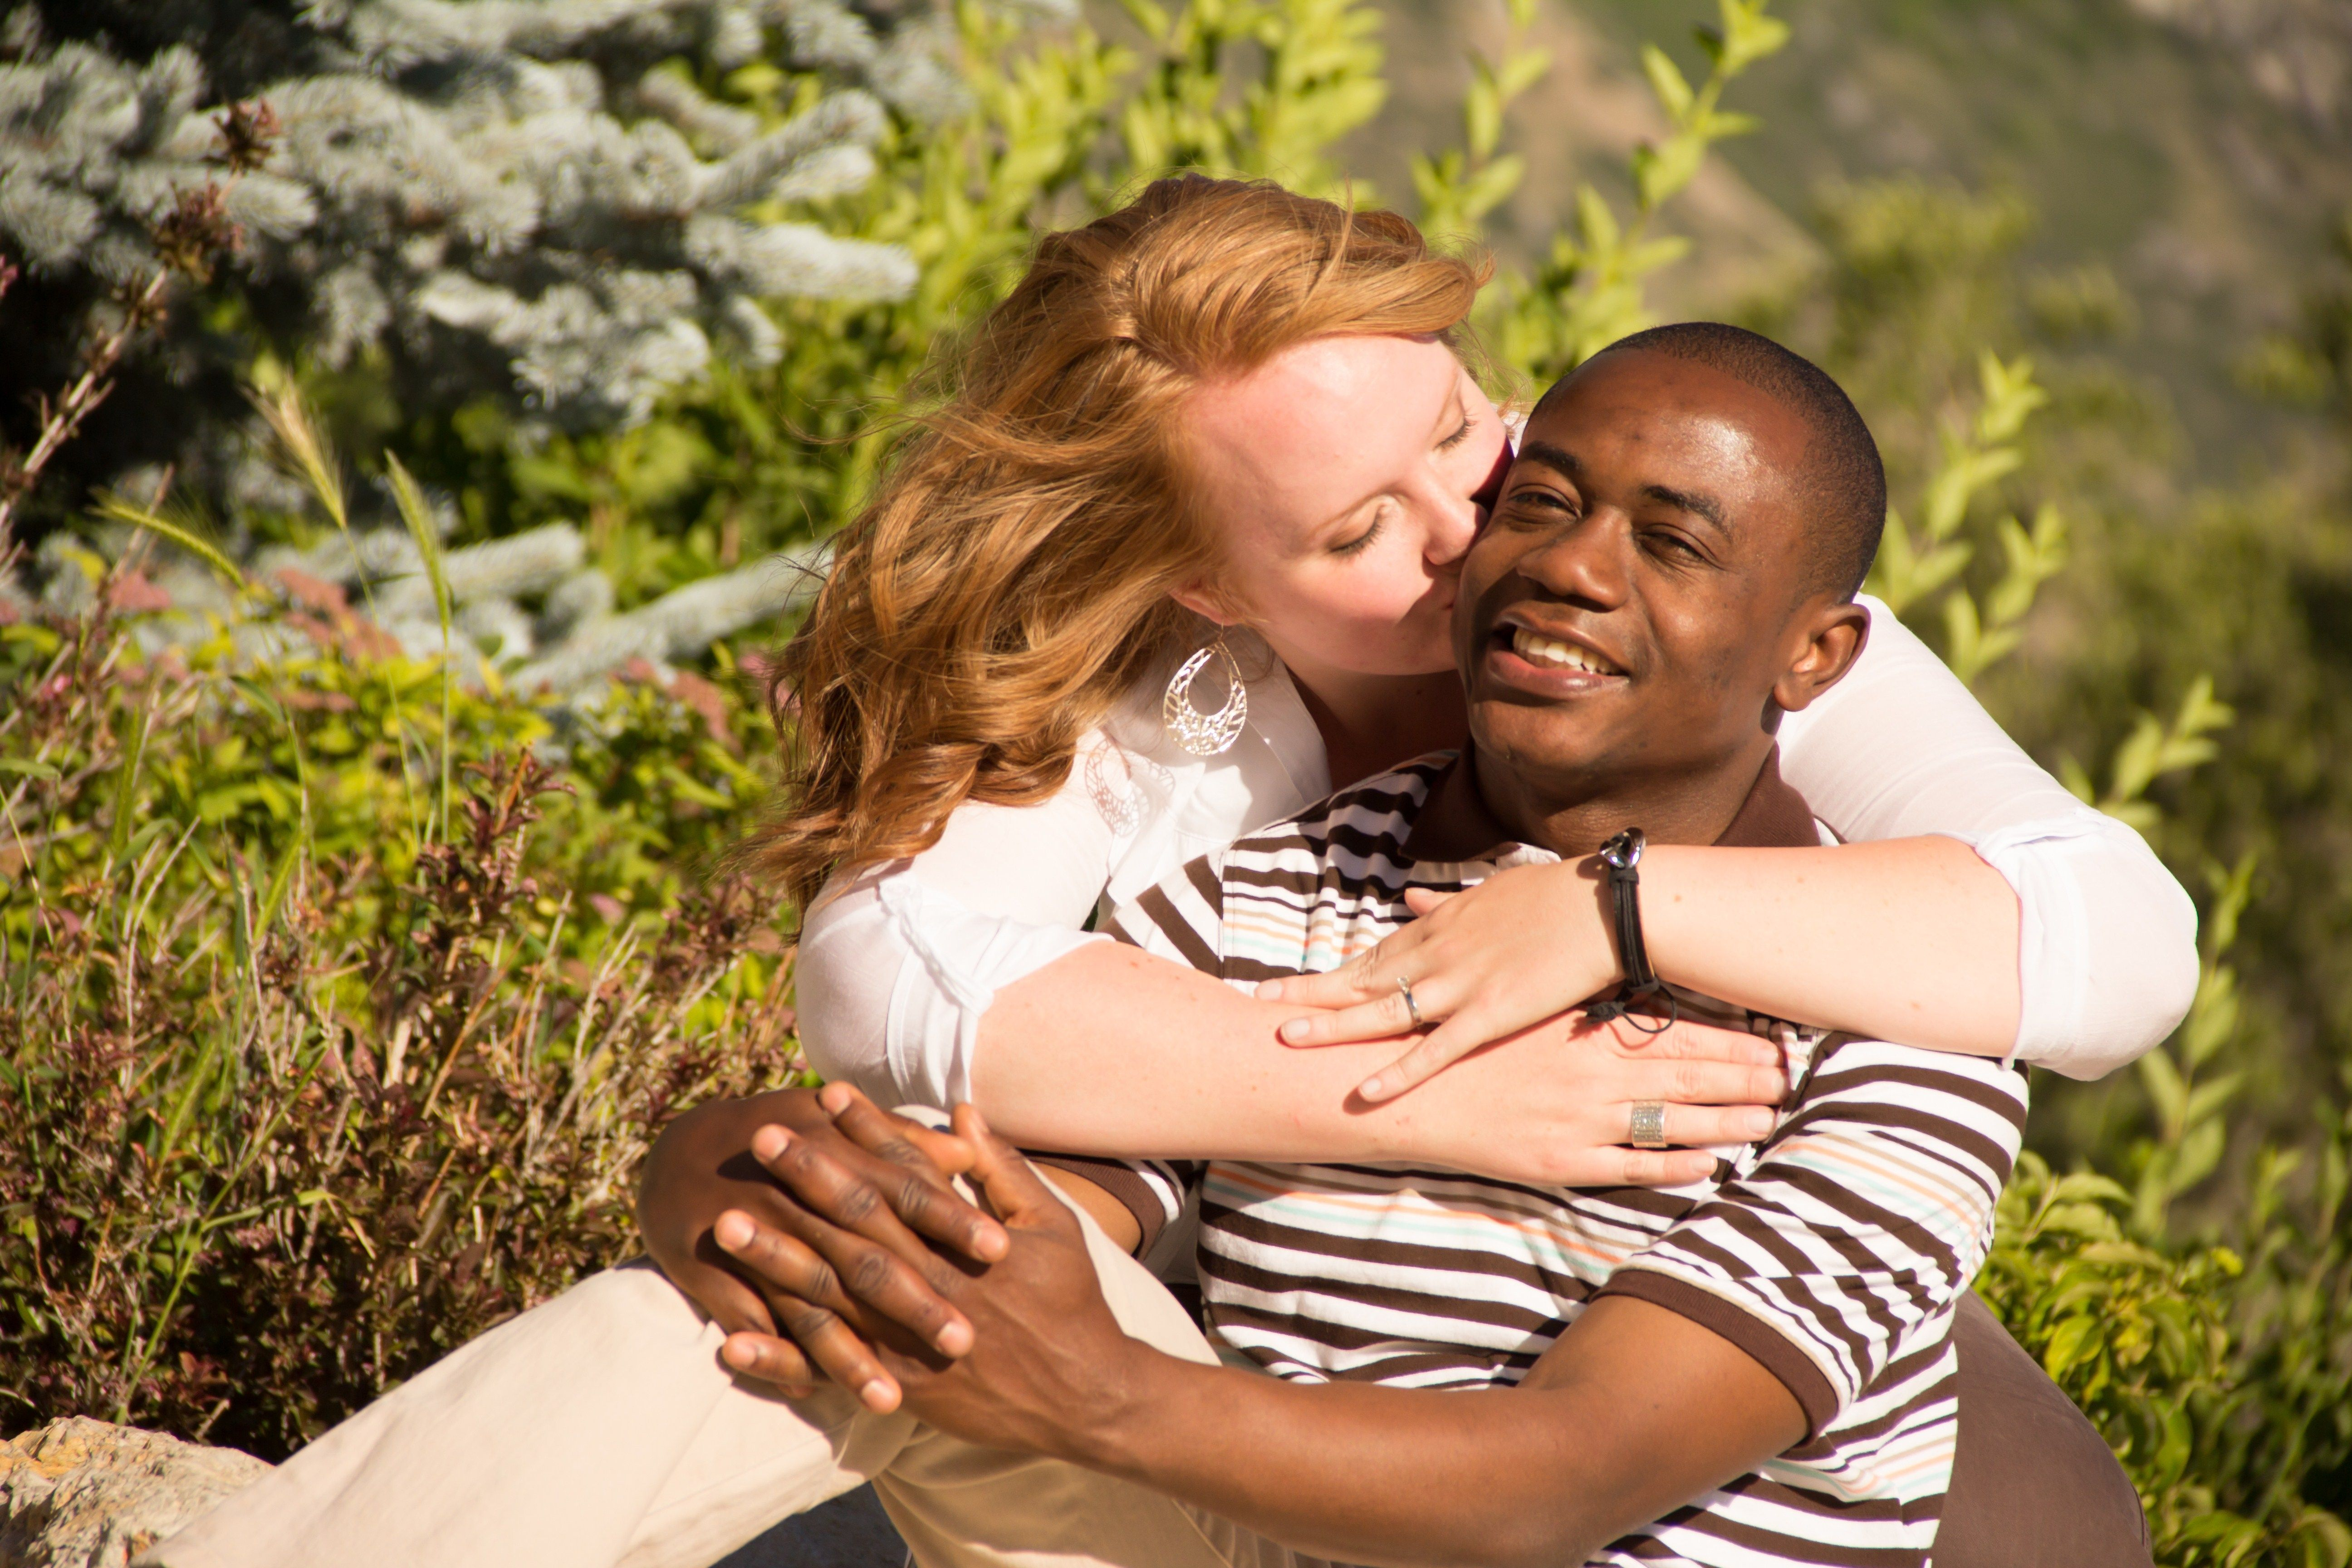 A woman kisses a man's cheek in an engagement picture.